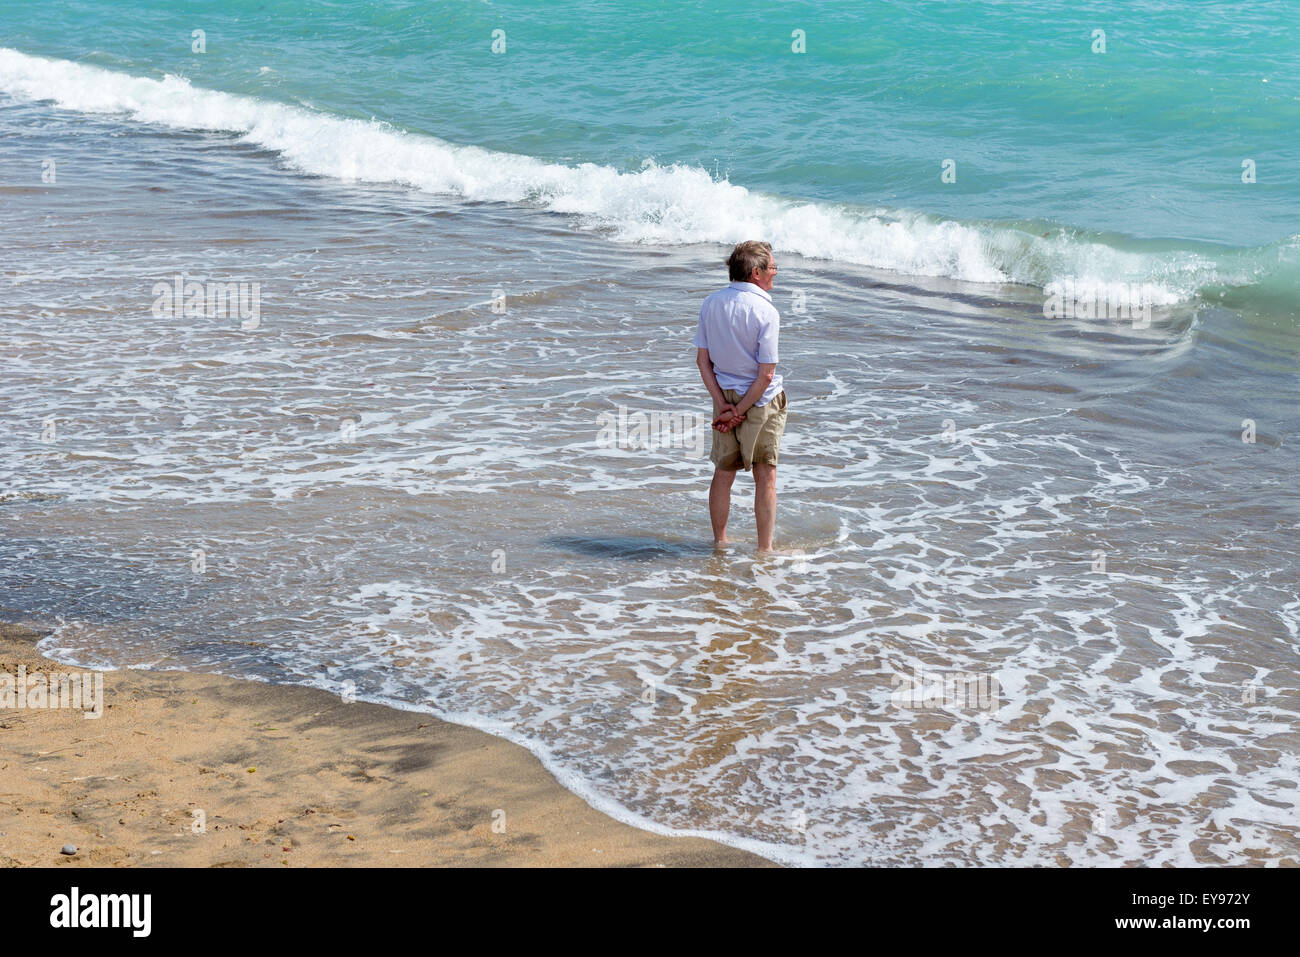 middle aged man wearing shorts and summer shirt standing ankle deep in the surf on a sandy beach at freshwater isle - Stock Image